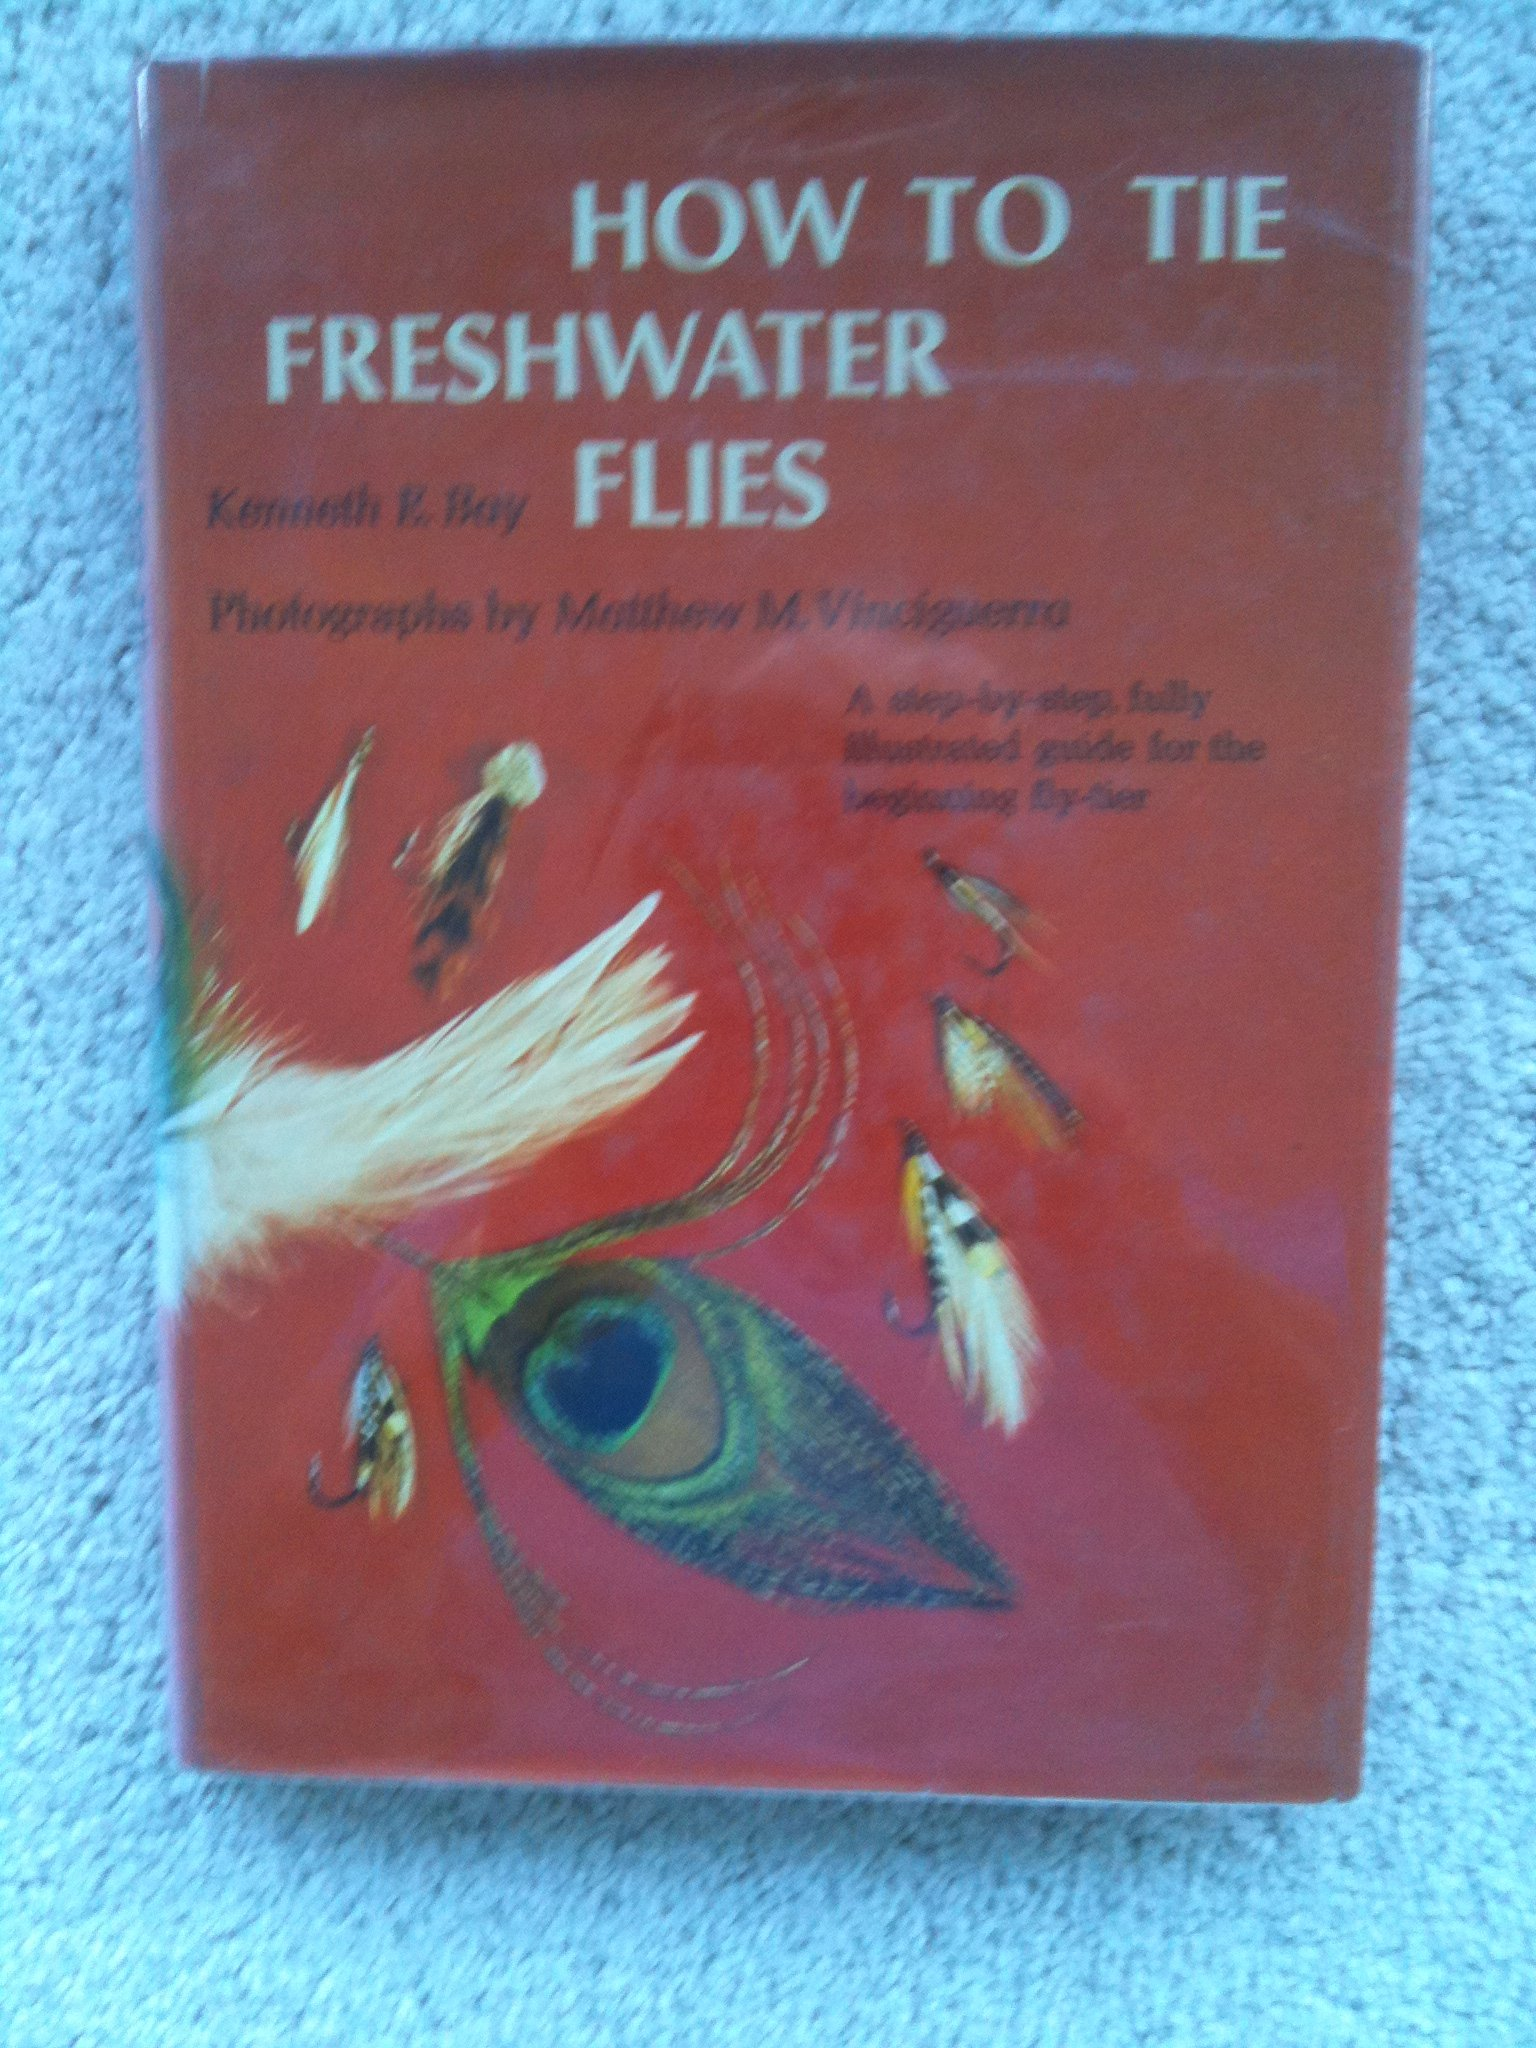 How to Tie Freshwater Flies, Bay, Kenneth E.; Vinciguerra, Matthew M.